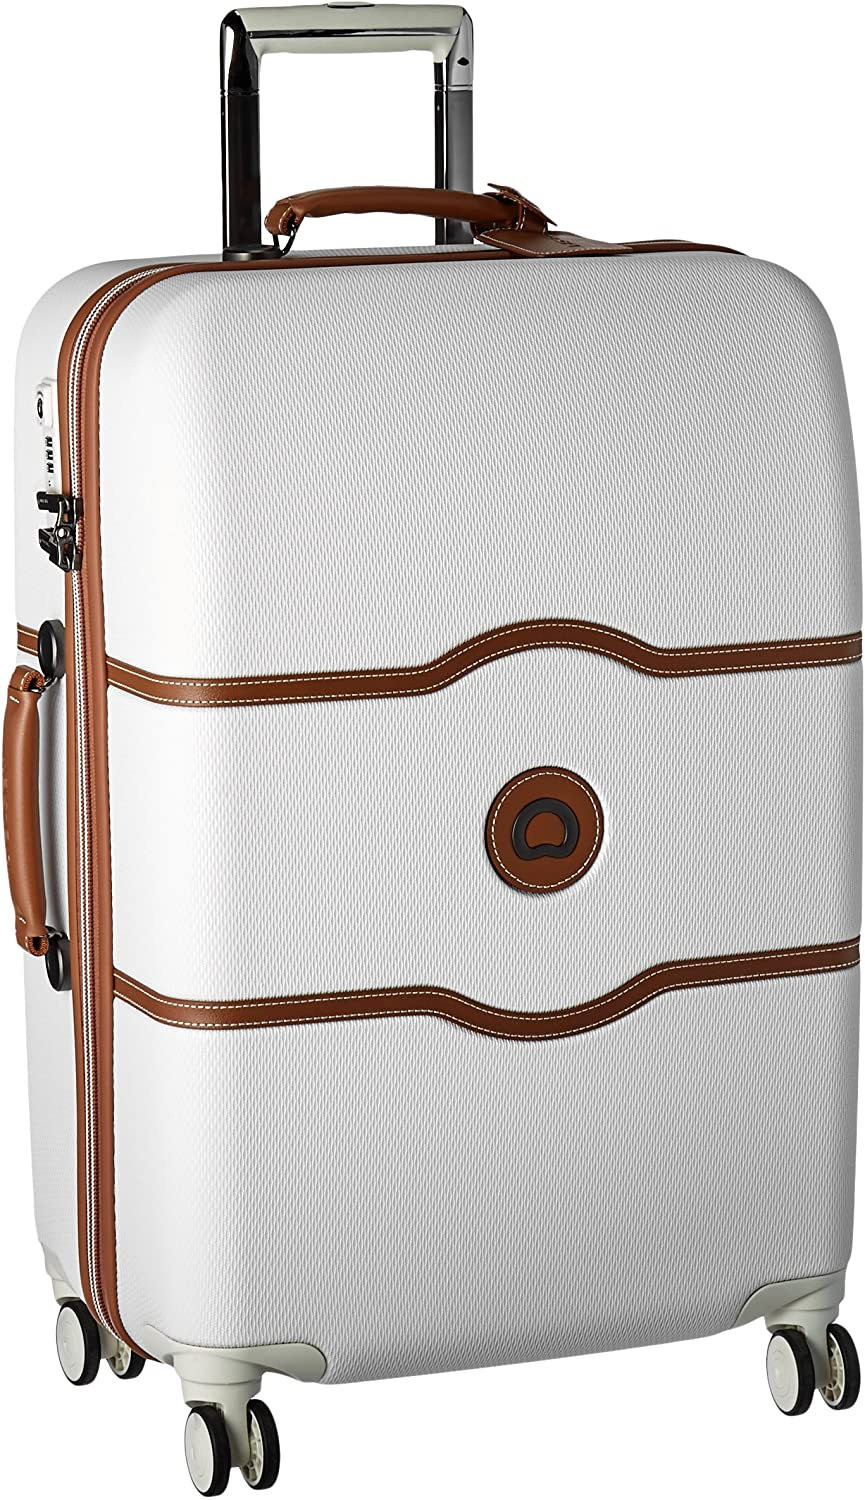 DELSEY Paris Chatelet Hard+ Hardside Luggage with Spinner Wheels, Champagne White, Checked-Medium 24 Inch